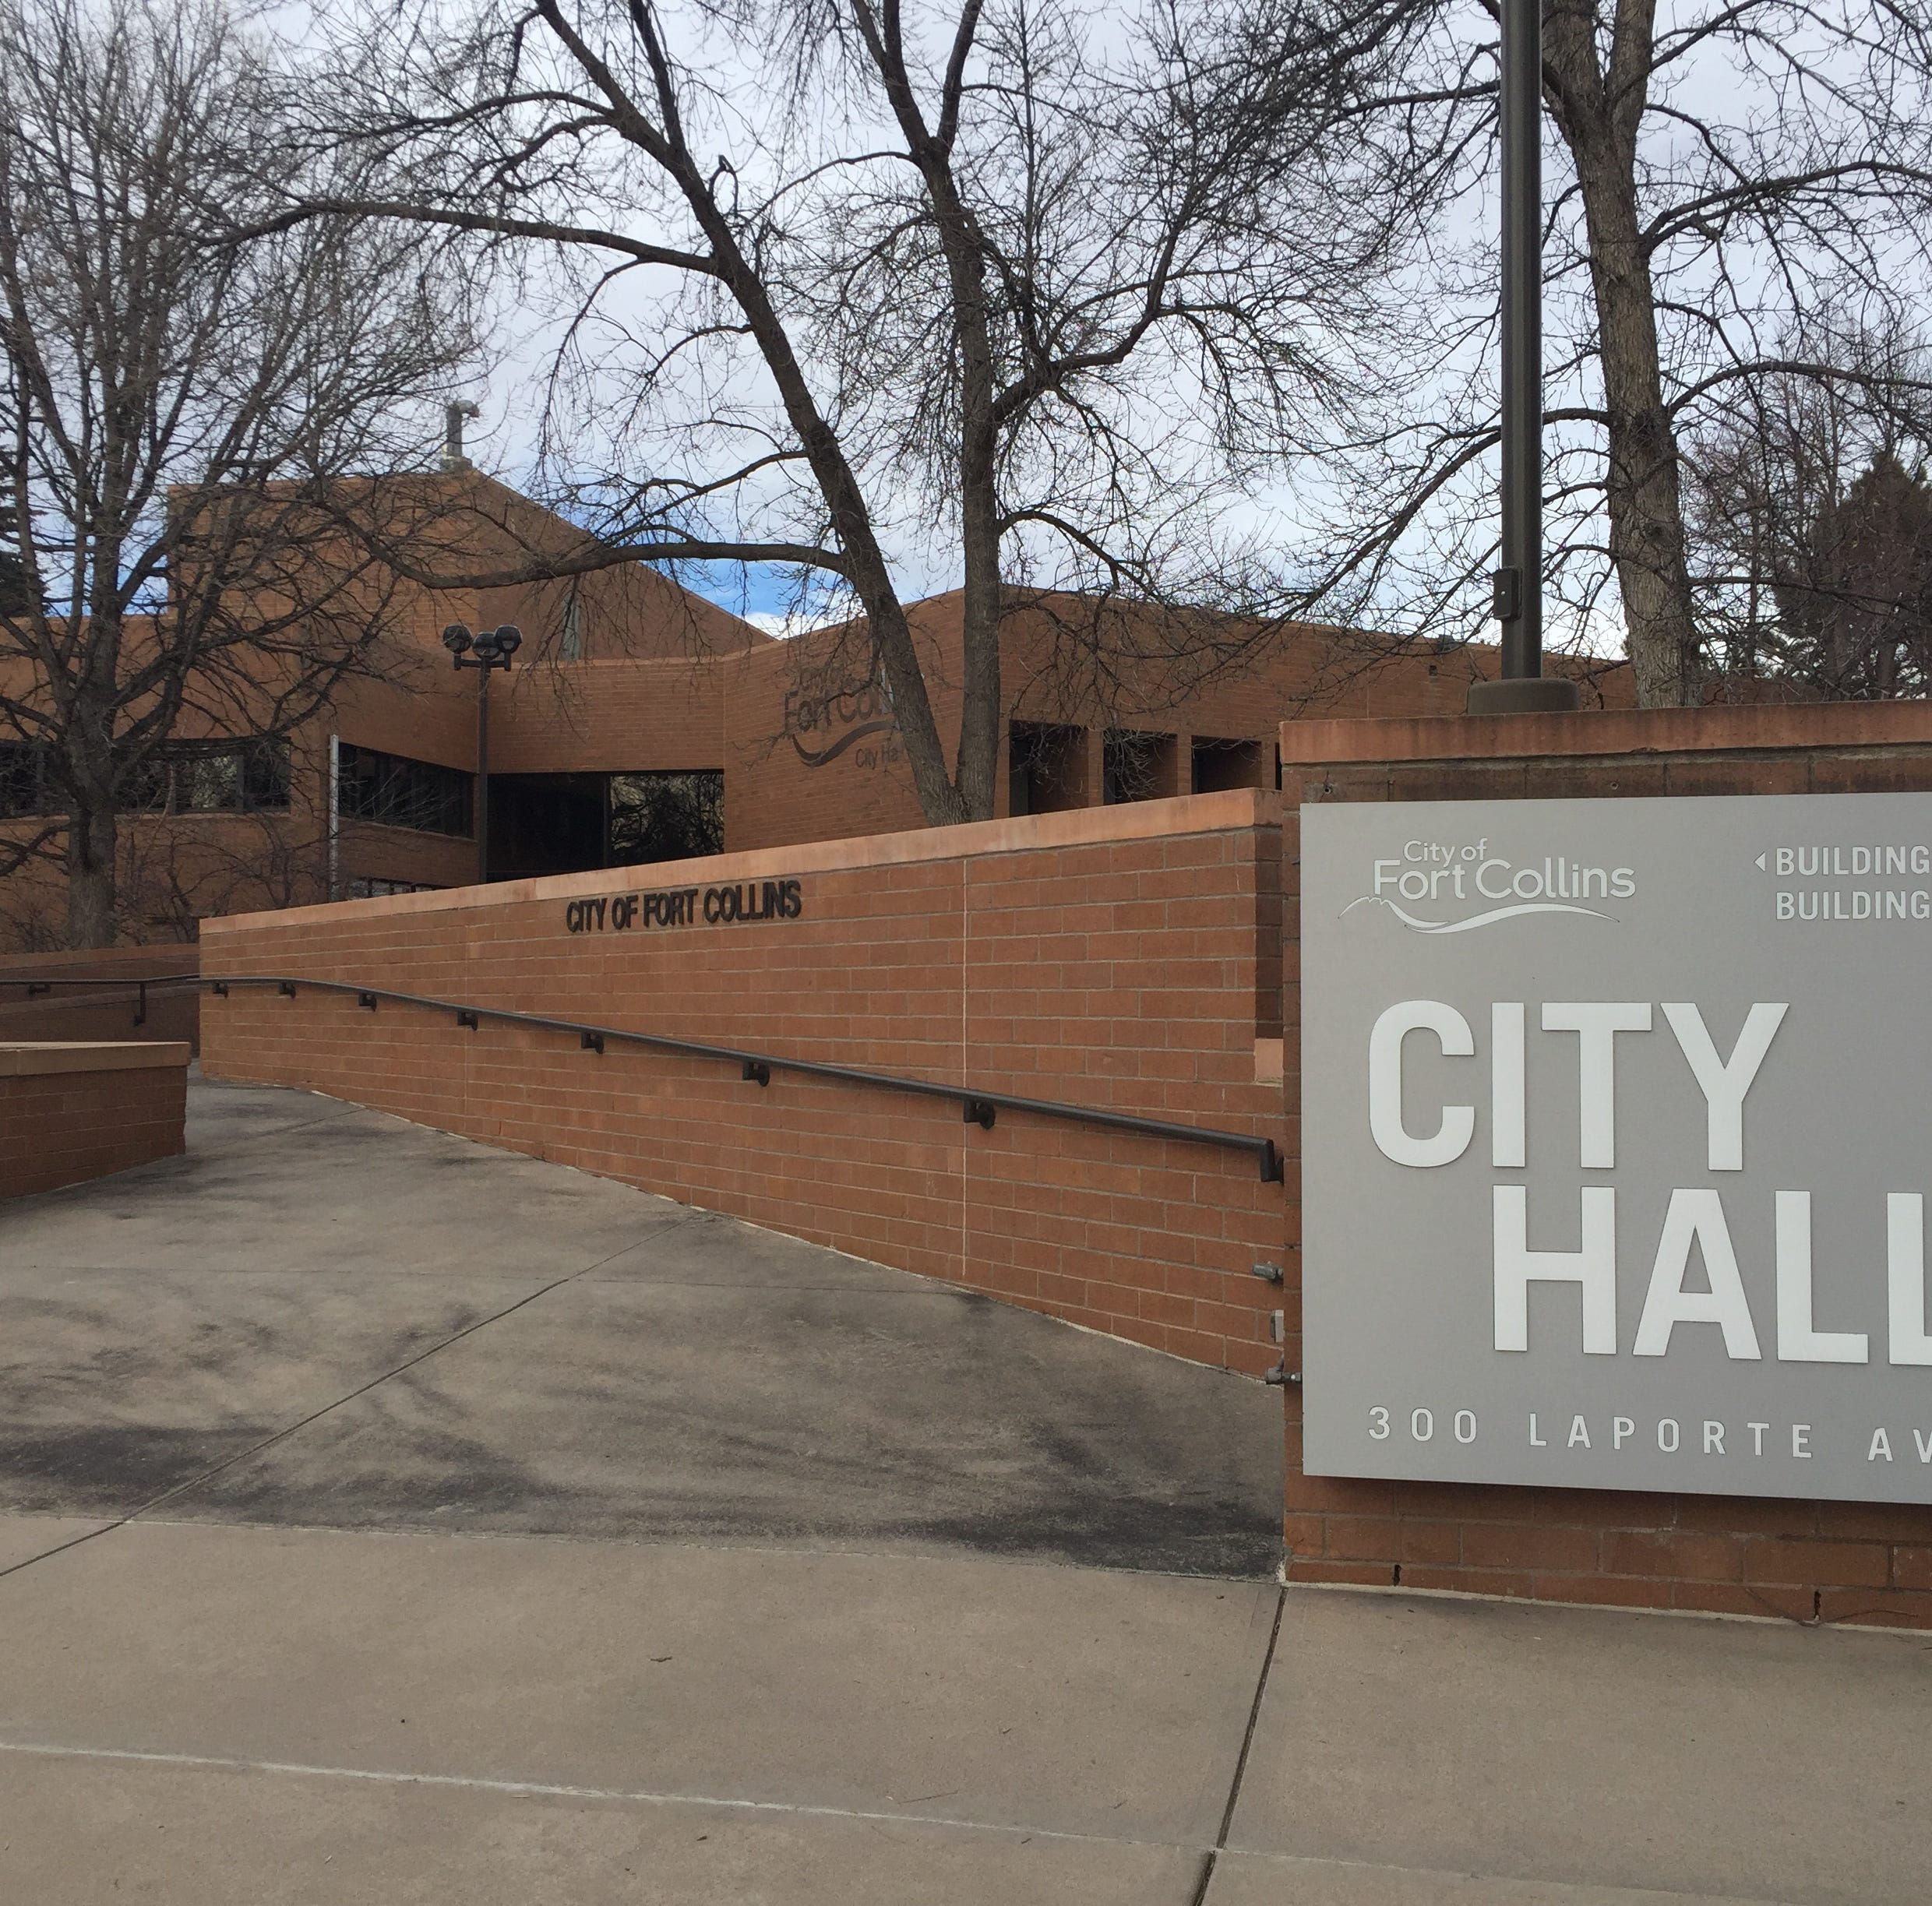 Fort Collins voters to decide whether City Council members should get full-time pay